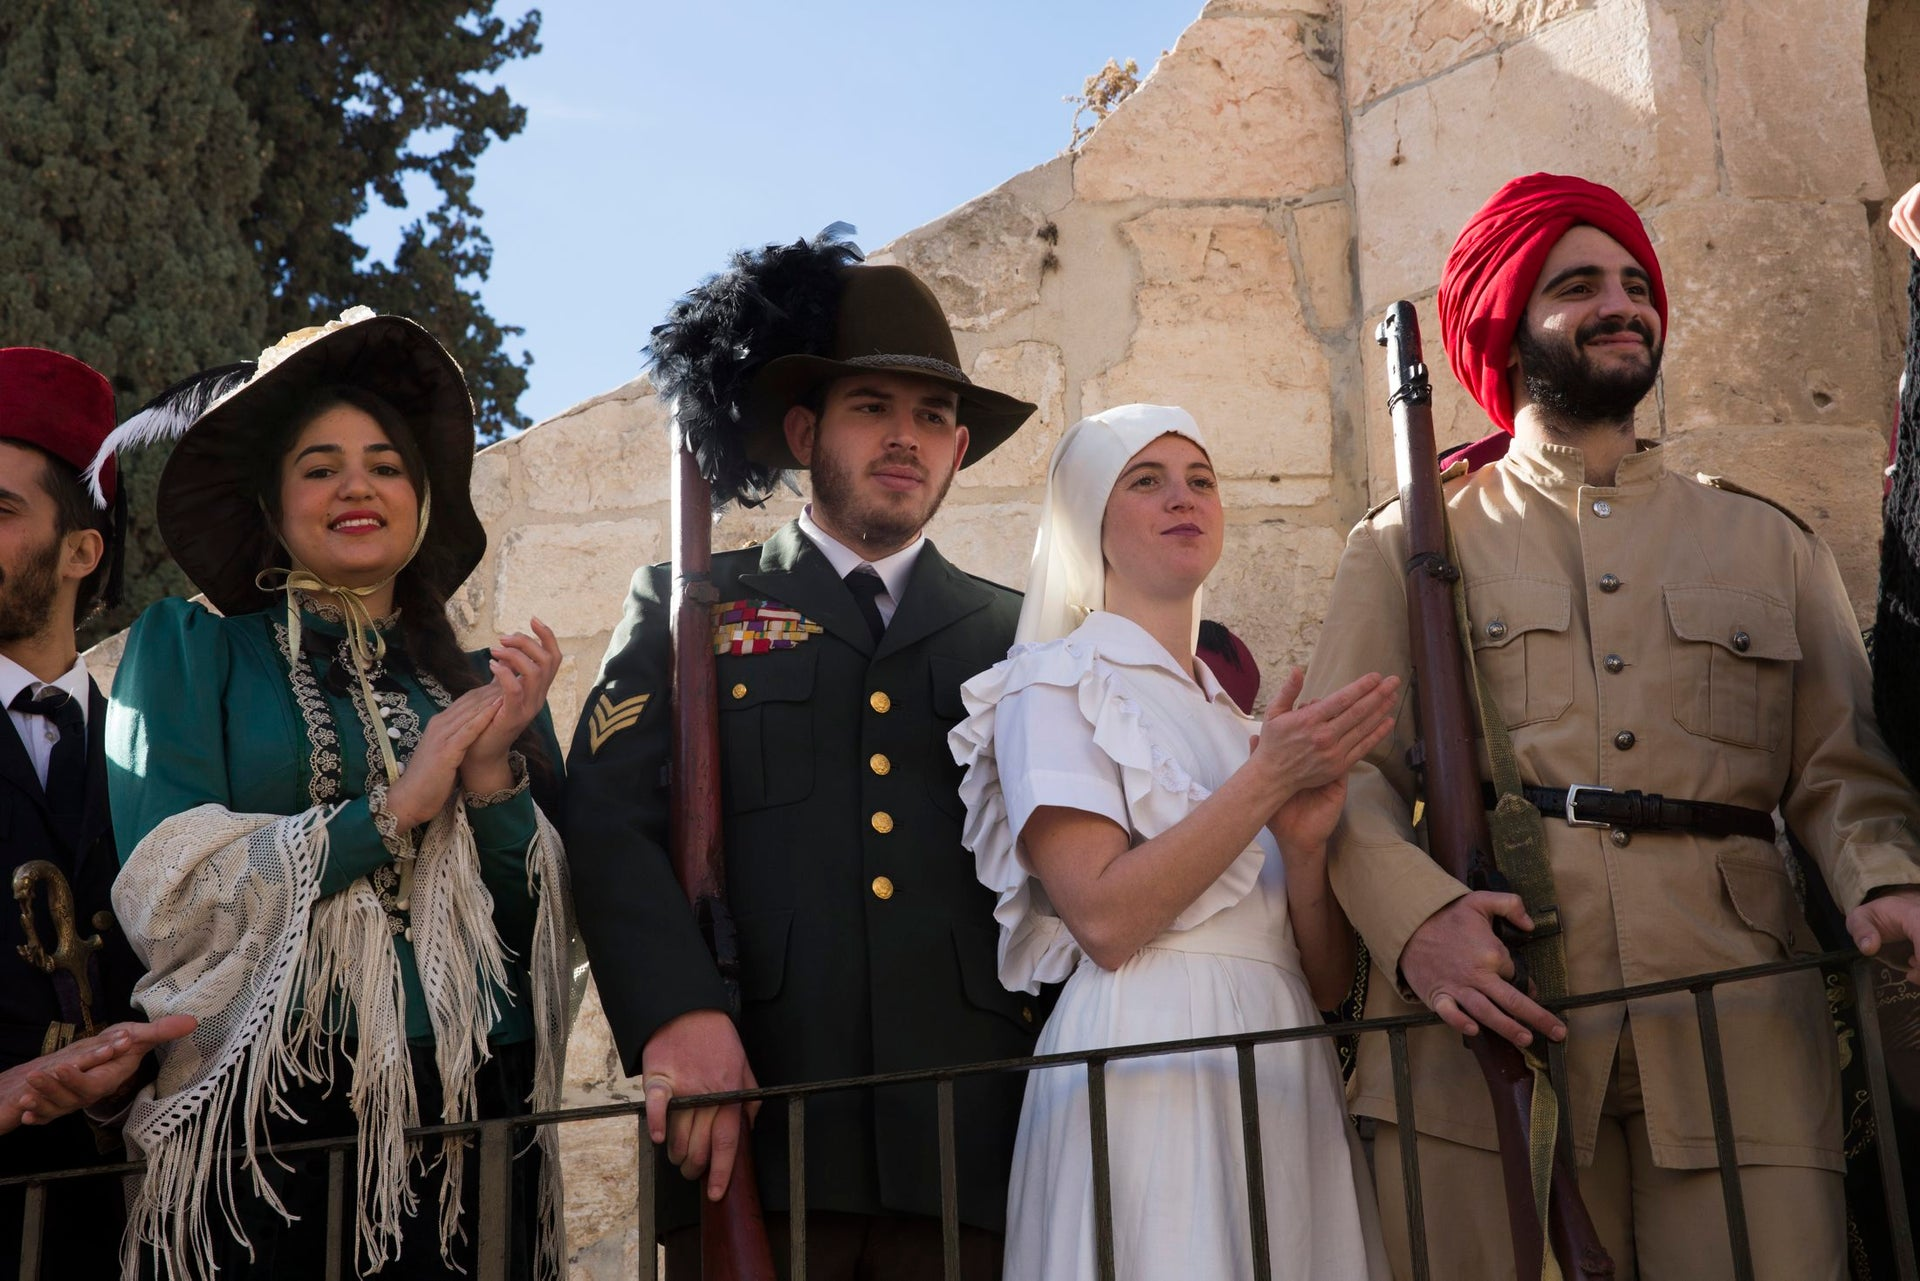 People dressed in costumes participate in a reenactment of General Allenby claiming Jerusalem for the British Empire, December 11, 2017.